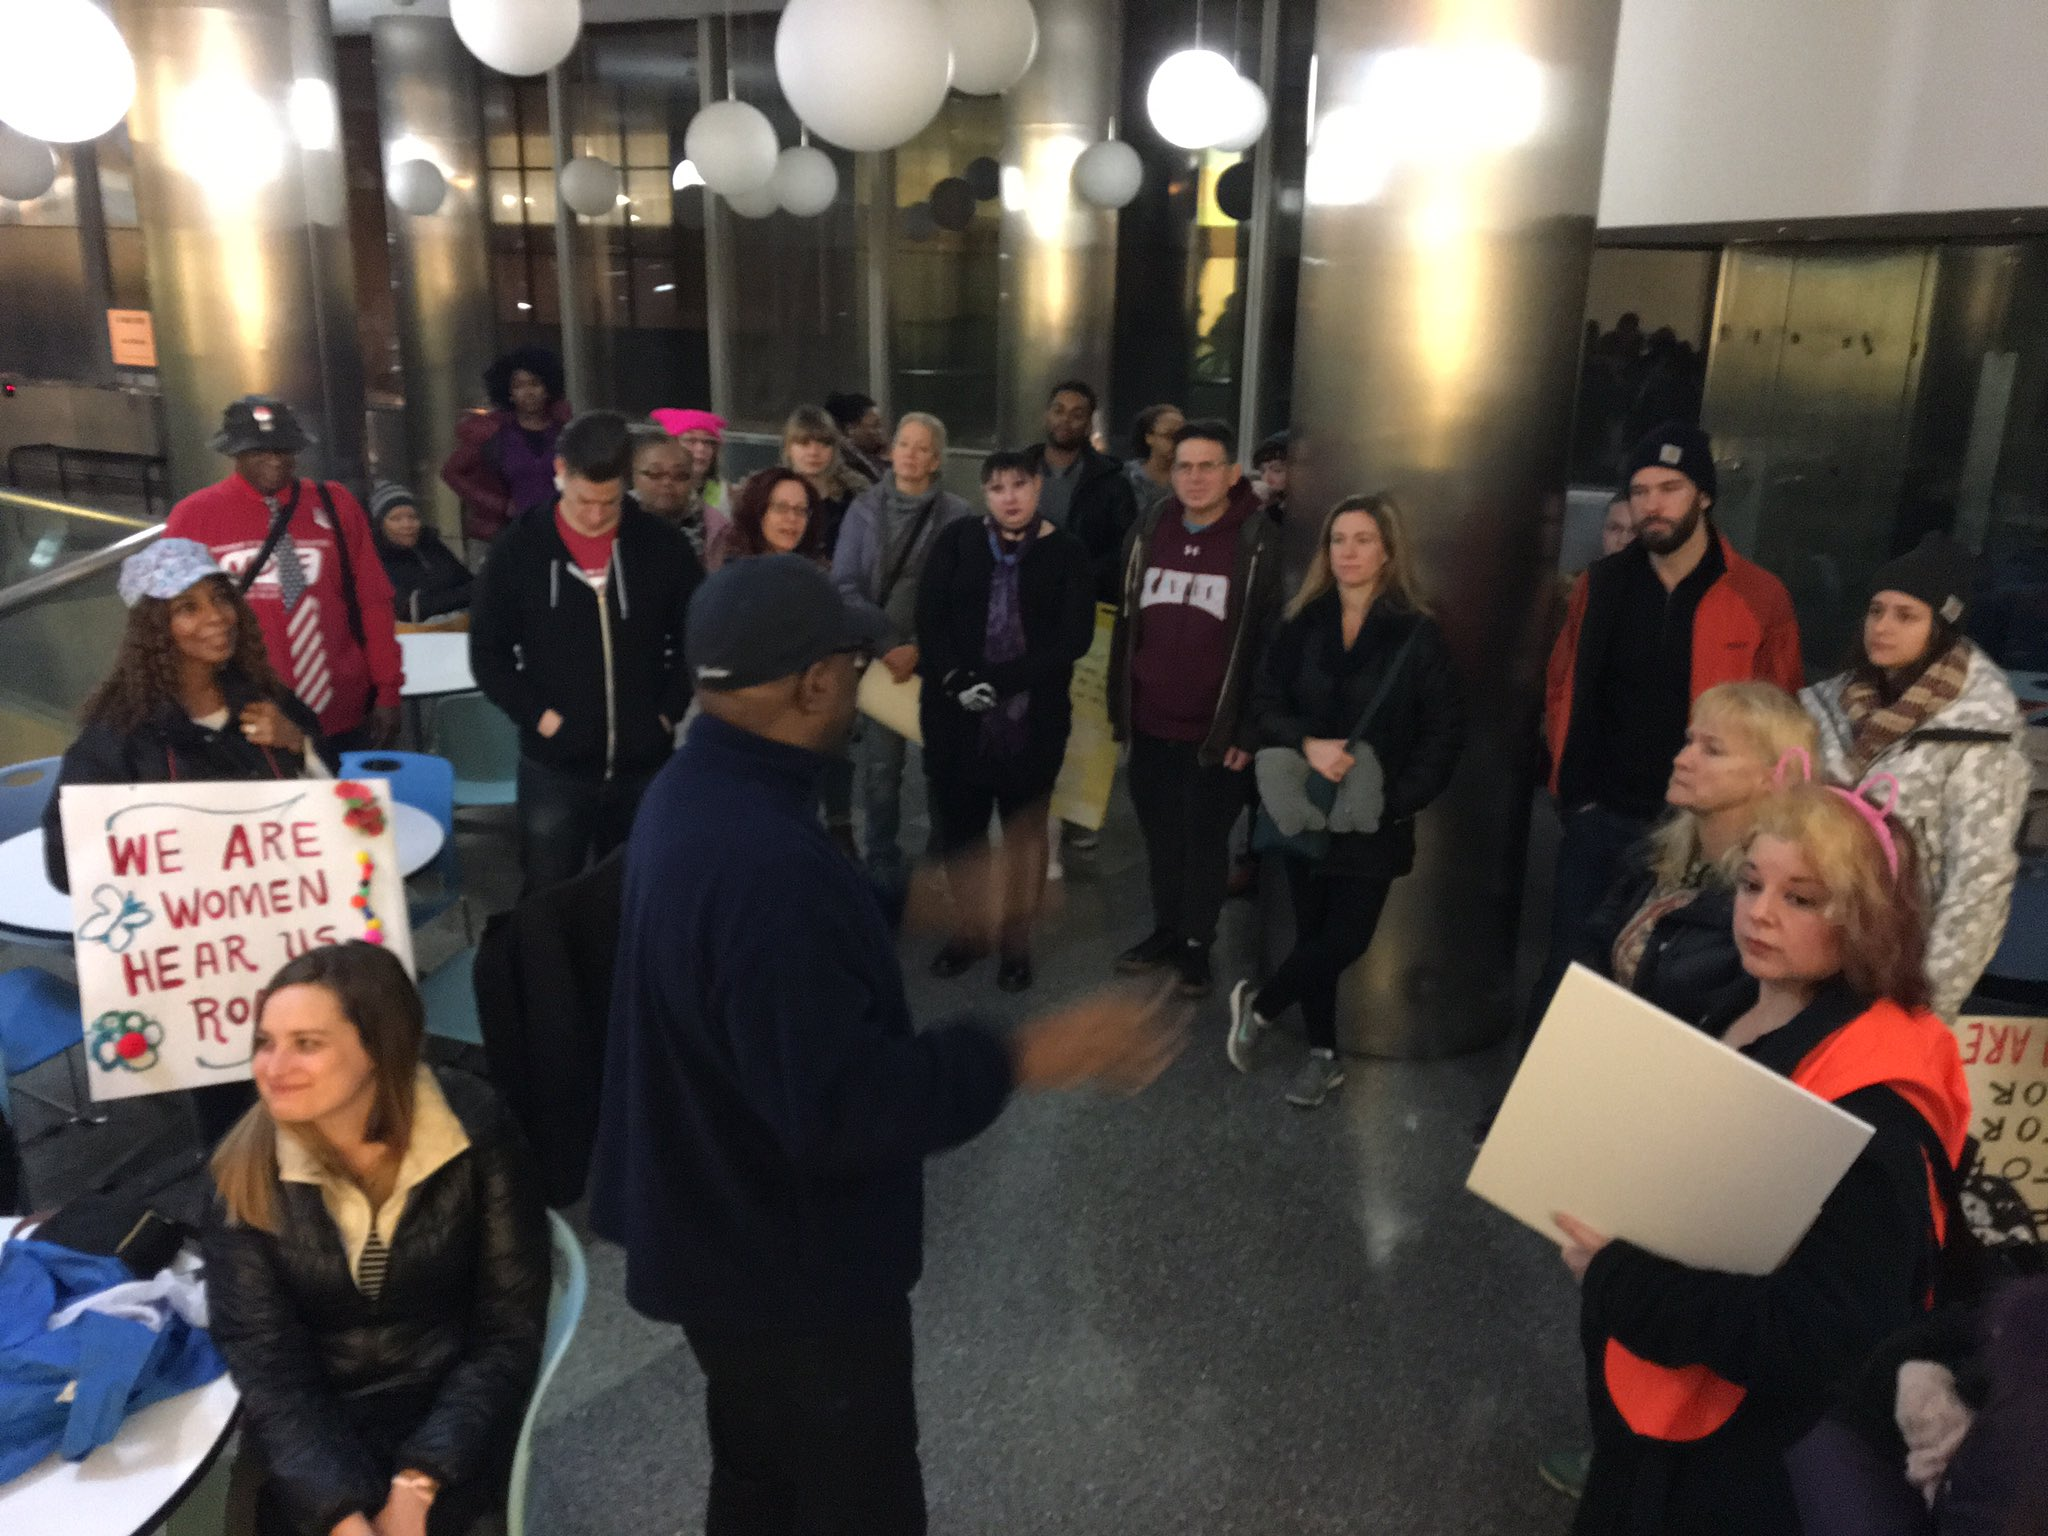 Some of the intrepid @UFT members who were at our office before 4am to catch the bus to DC & the @womensmarch! @msmoskop @MindyRosier https://t.co/aJF9BADlX8